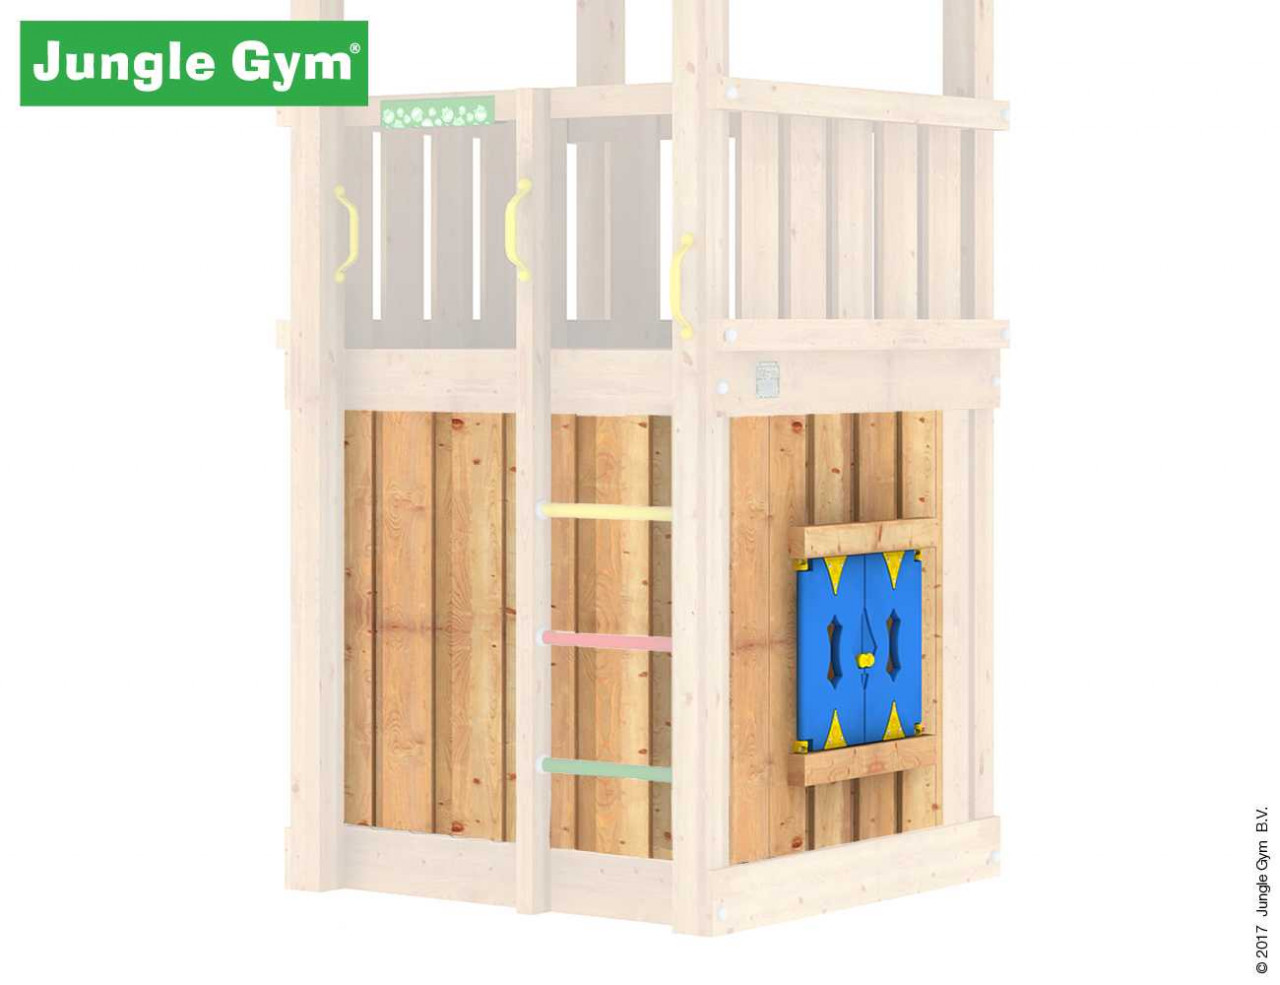 Jungle Gym Playhouse-Modul, Spielhaus-Modul